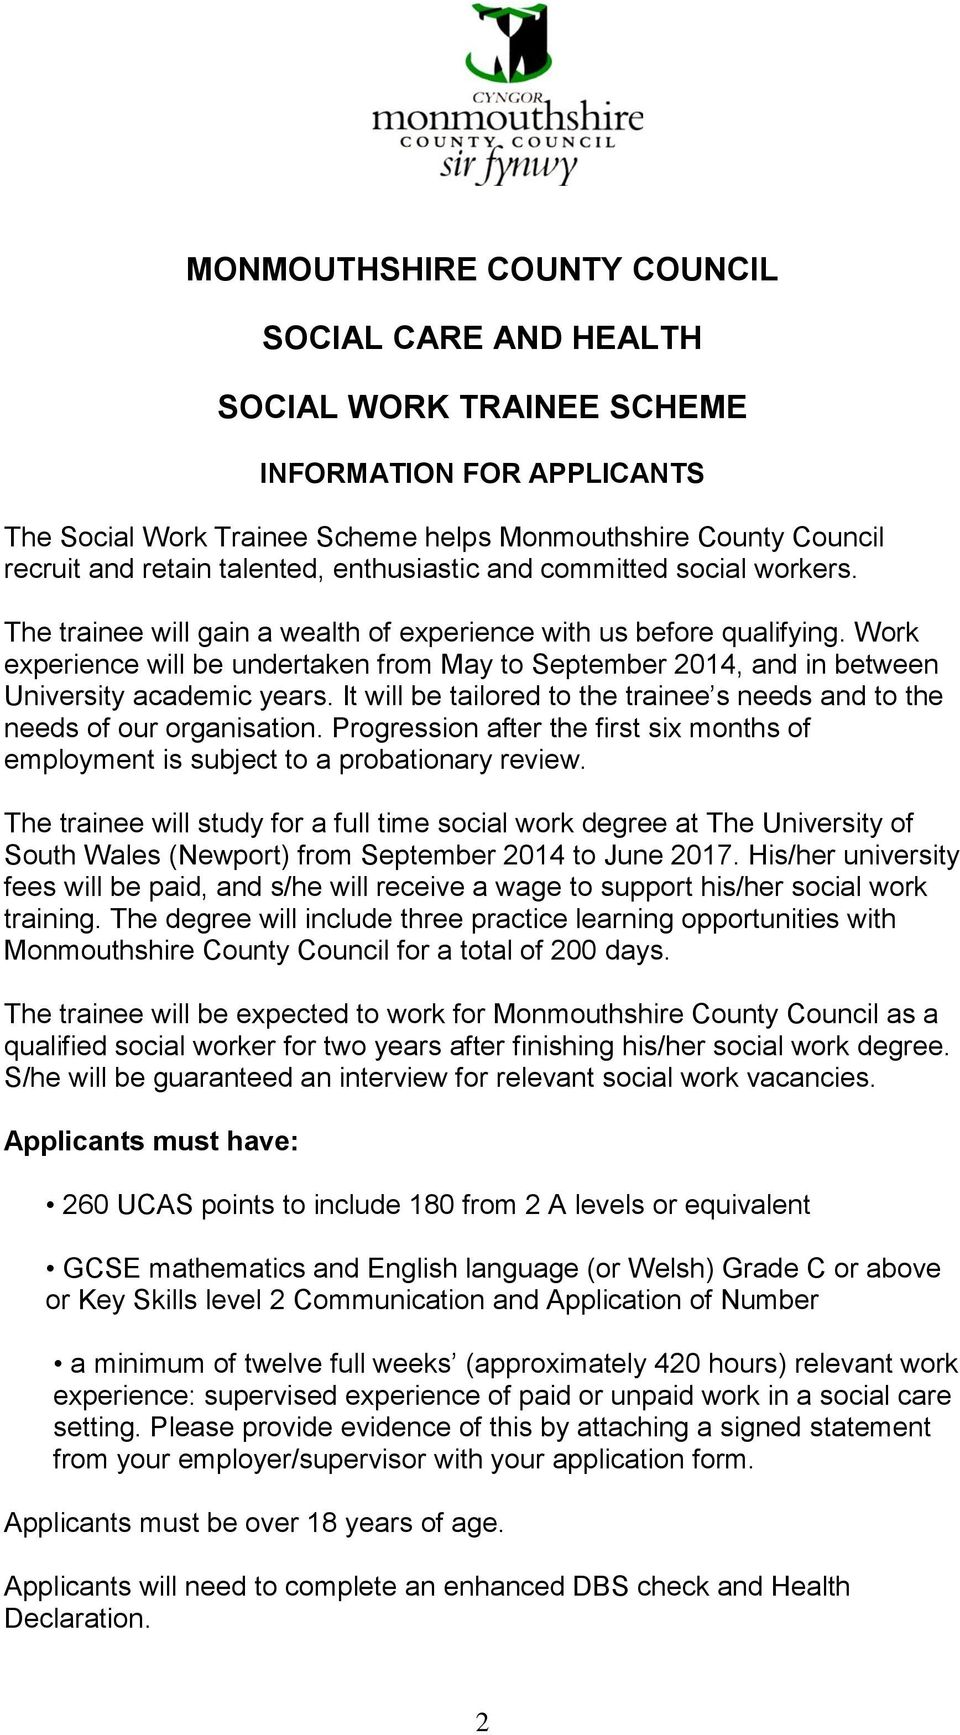 Work experience will be undertaken from May to September 2014, and in between University academic years. It will be tailored to the trainee s needs and to the needs of our organisation.